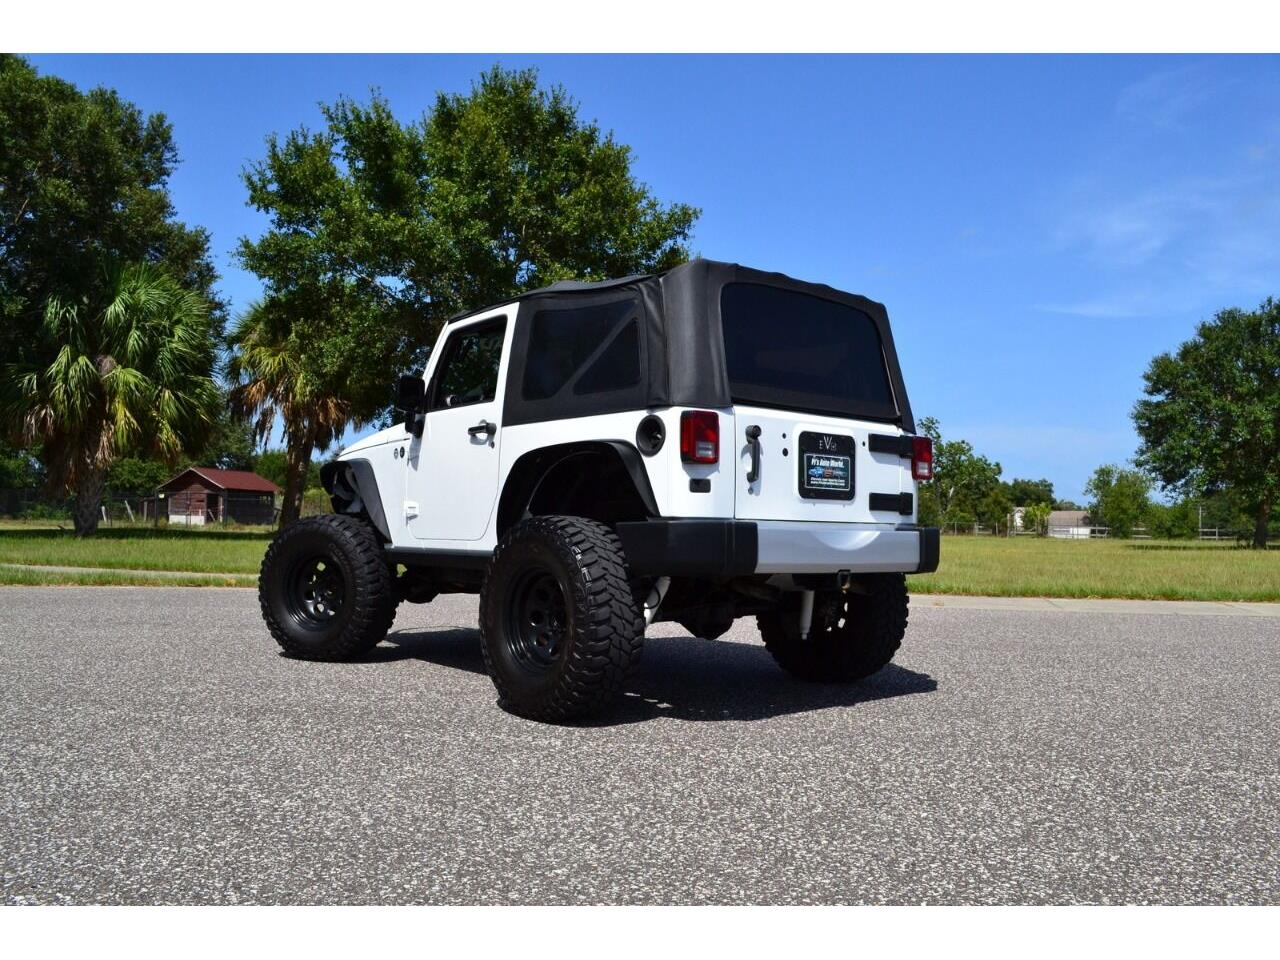 2012 Jeep Wrangler (CC-1364162) for sale in Clearwater, Florida